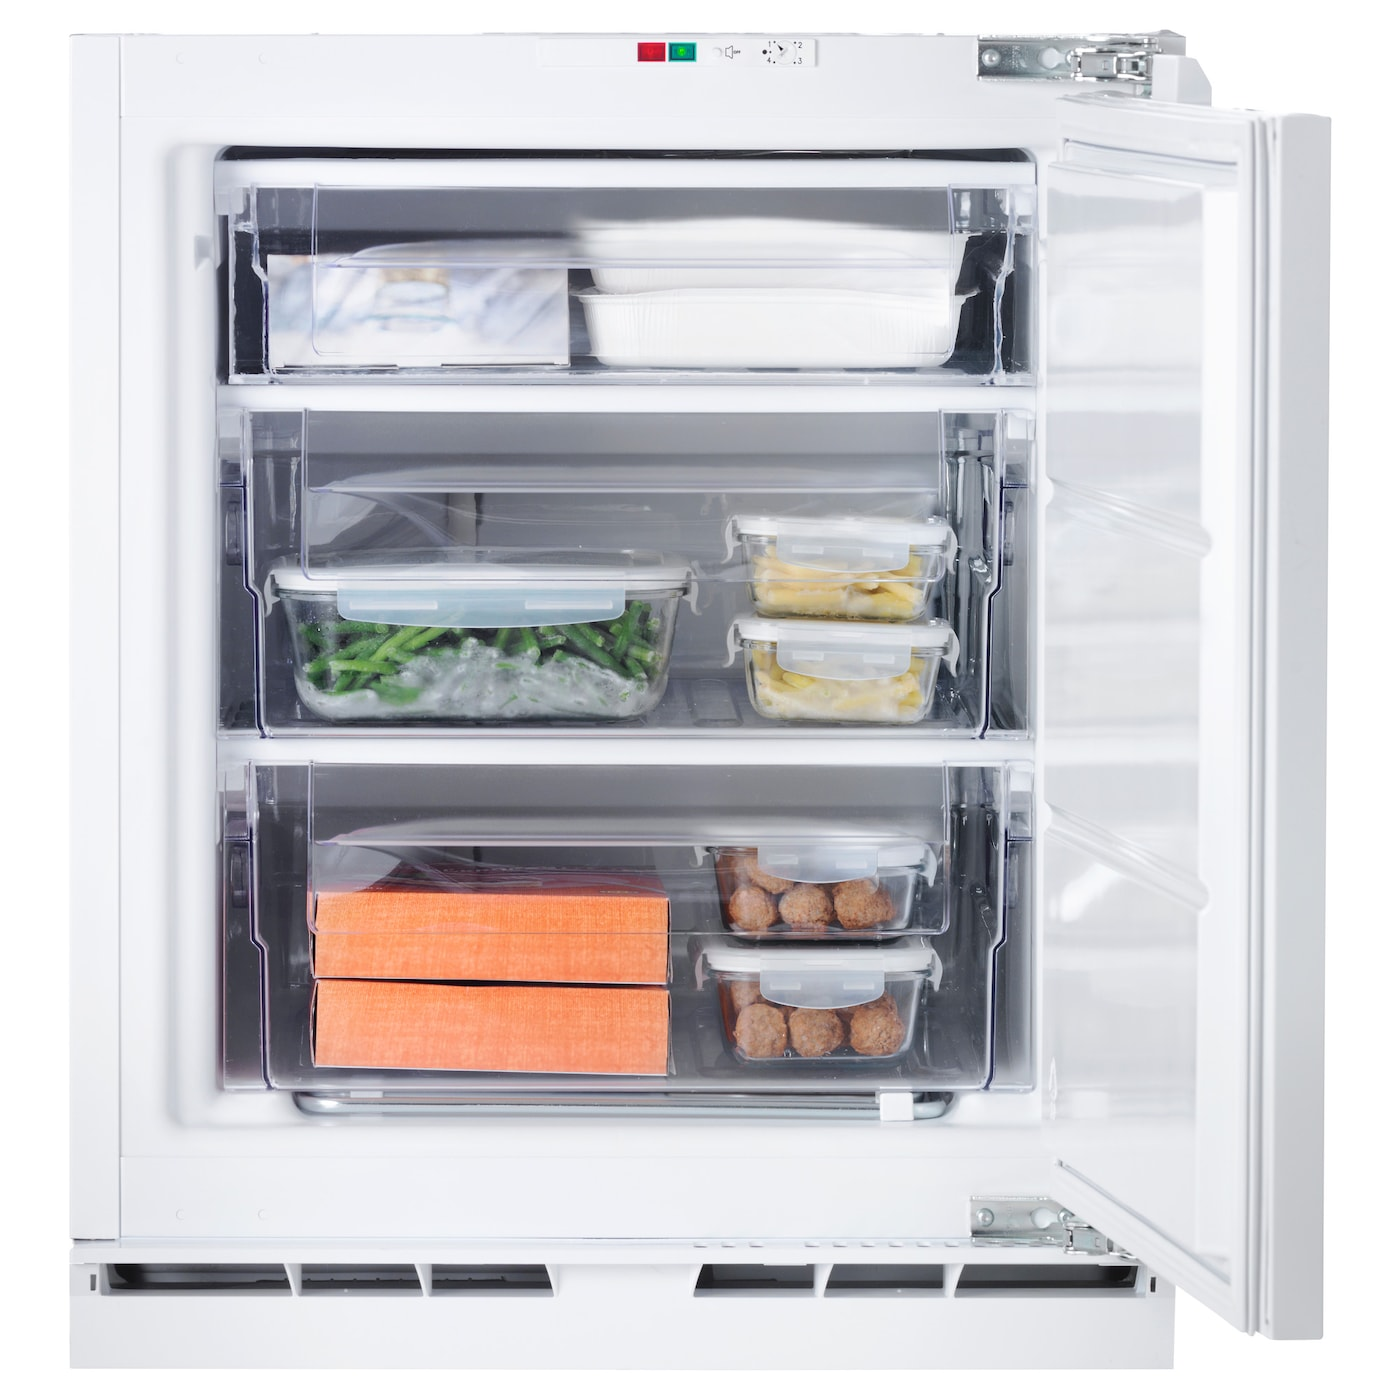 IKEA GENOMFRYSA integrated freezer A+ Smooth inner walls and 3 removable drawers for easy cleaning.